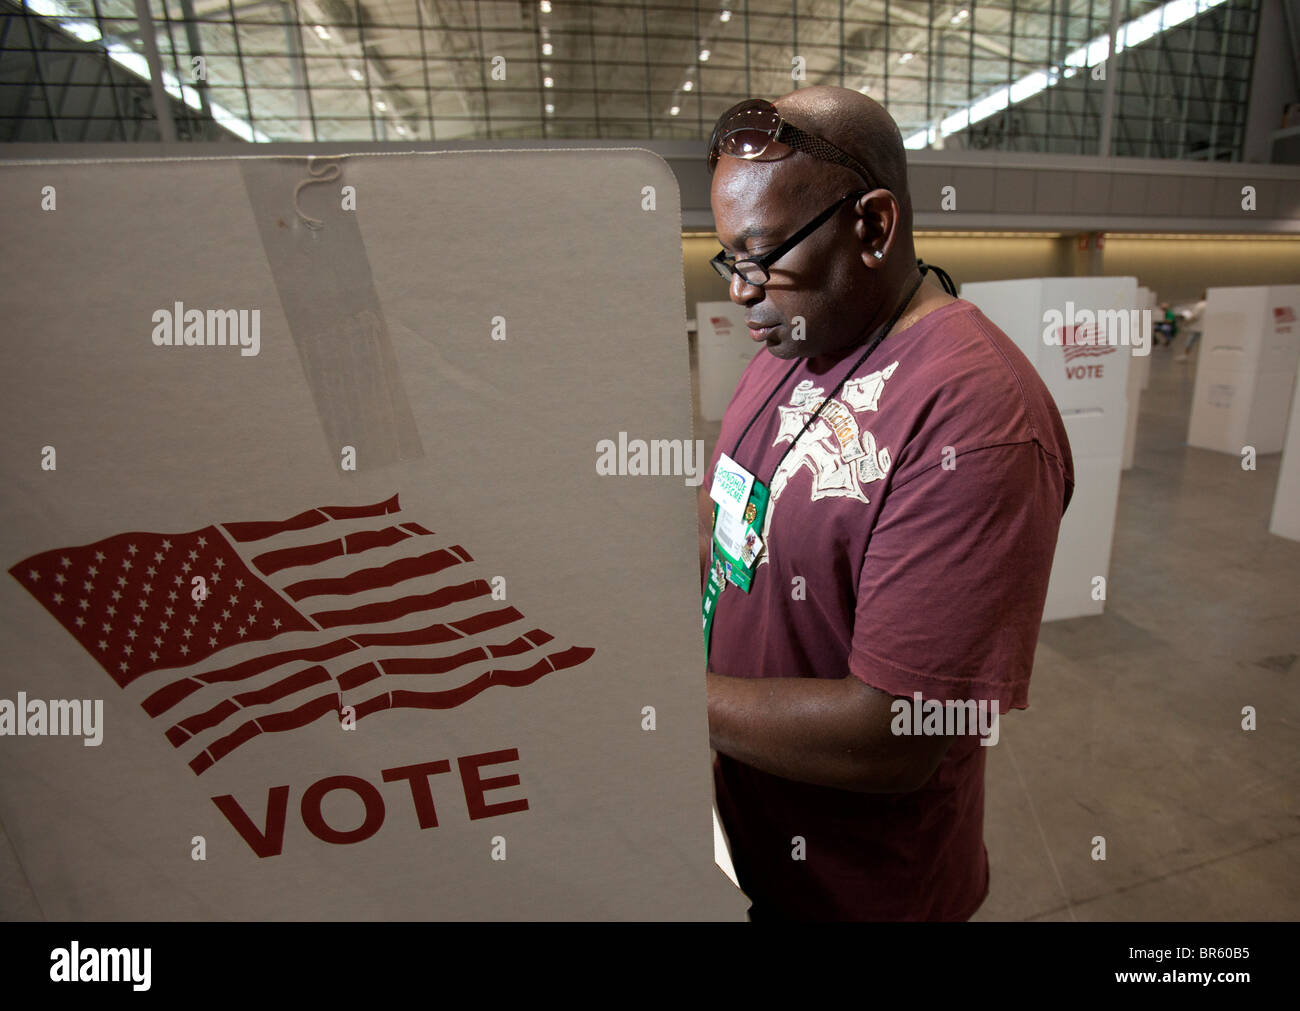 Voting for Union Leaders at AFSCME Convention - Stock Image